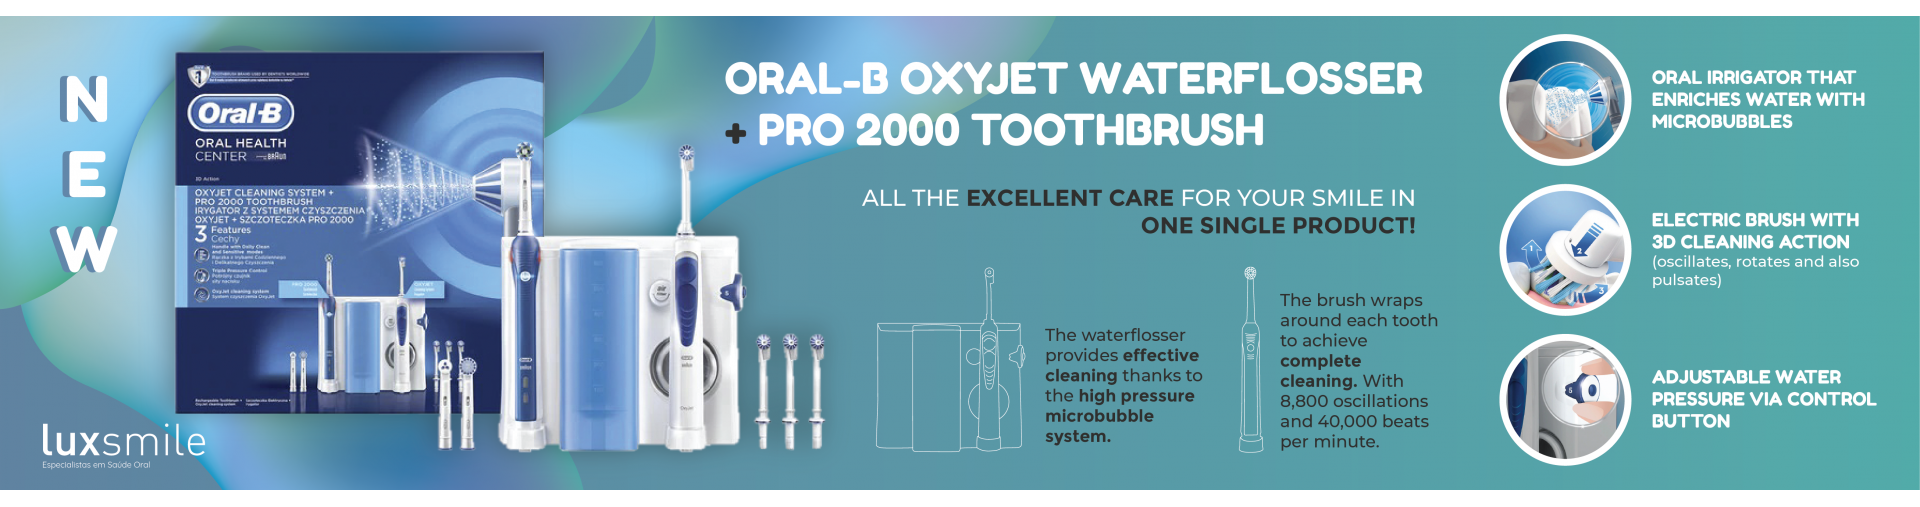 Oral-B Oxyjet Waterflosser + Electric Toothbrush Pro 2000